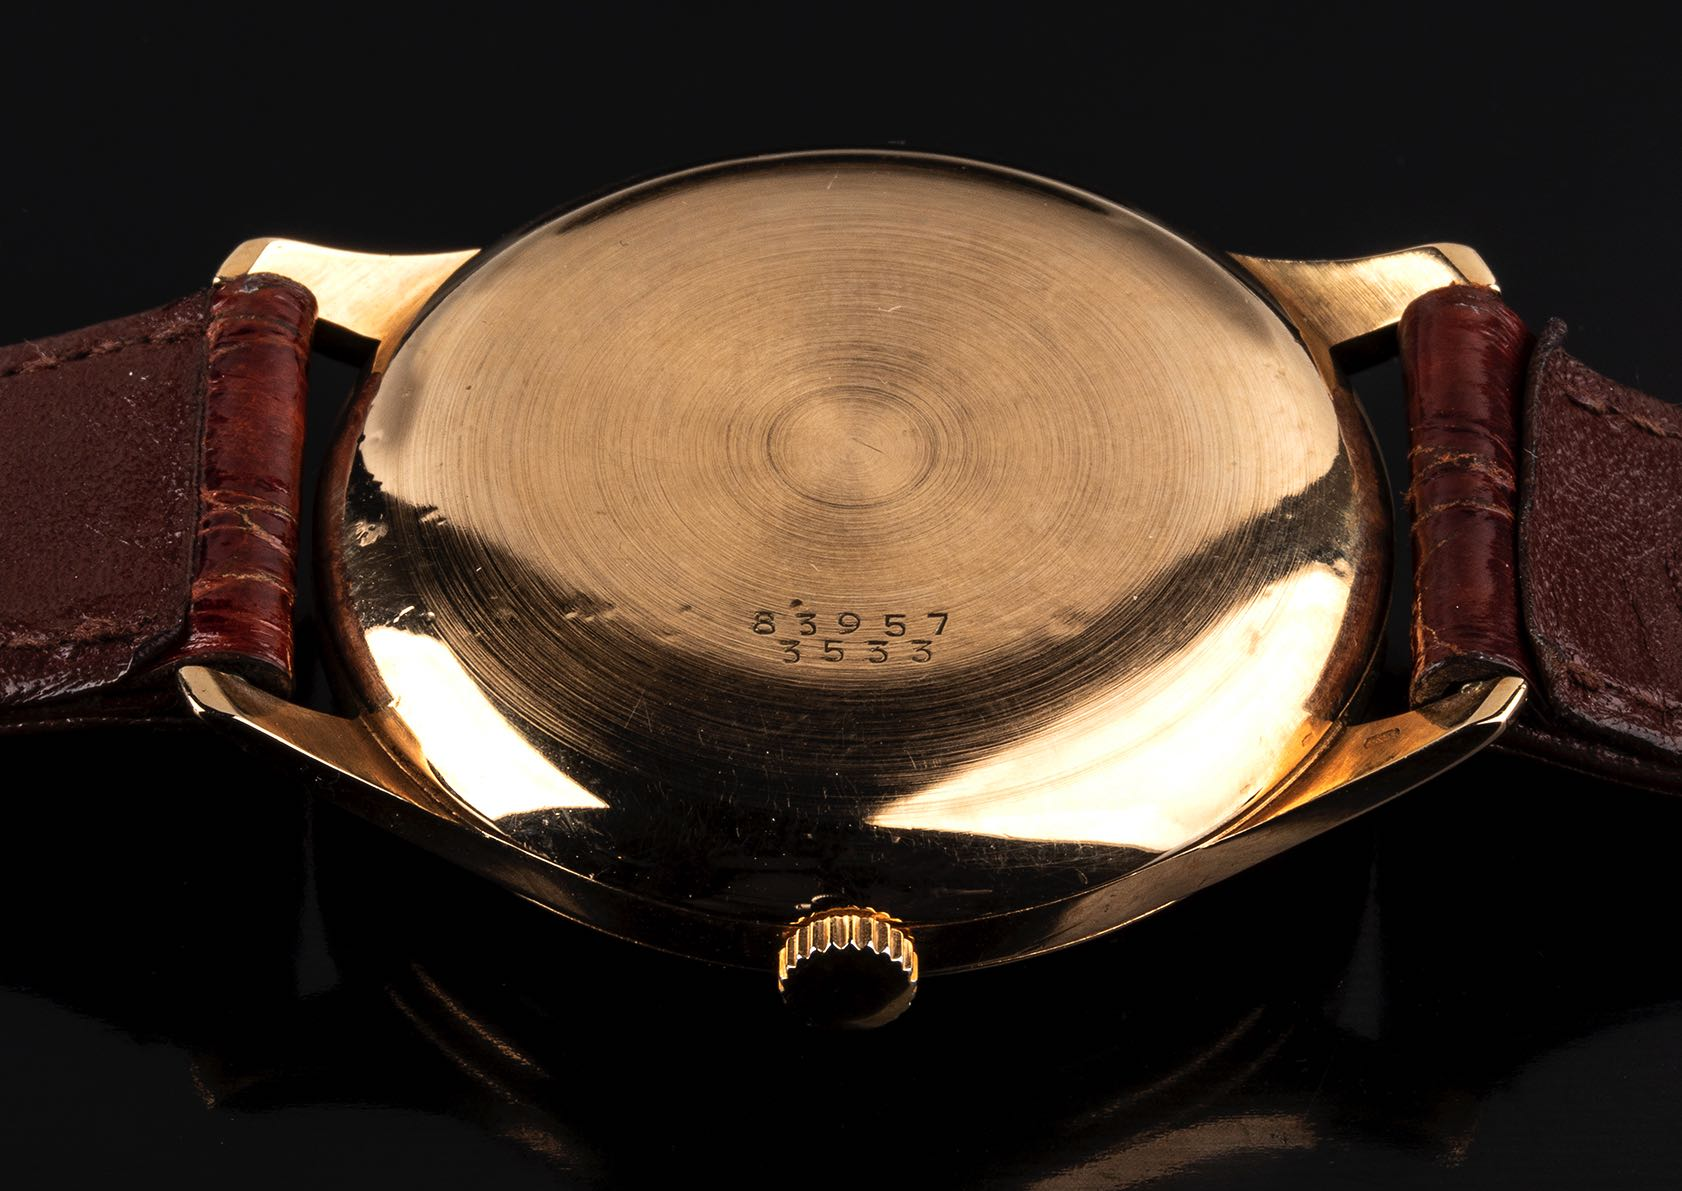 Baume et Mercier, 18 kt gold, Bubble Back Look, 50' - Image 3 of 4